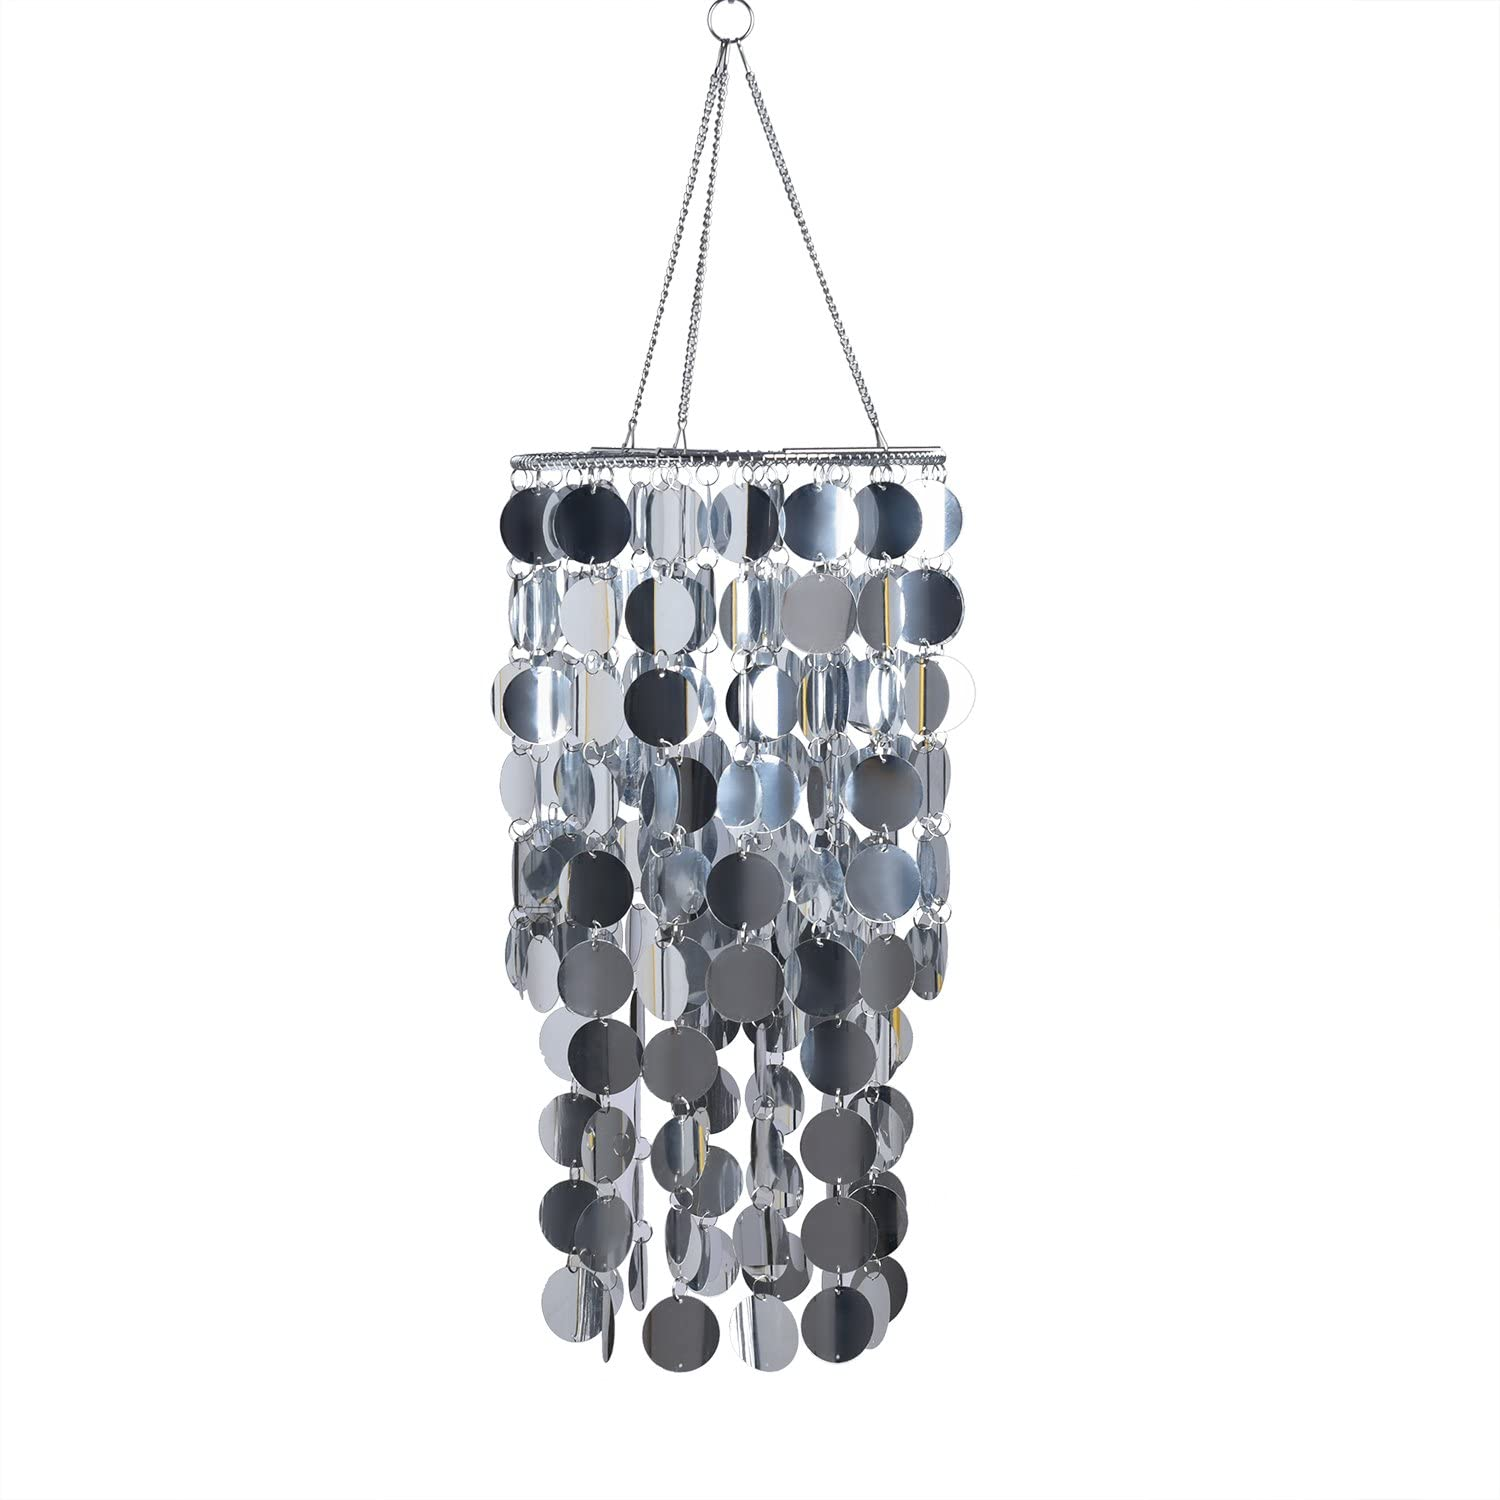 Import FlavorThings Silver Bling Spangle Large discharge sale Chandelier Hanging